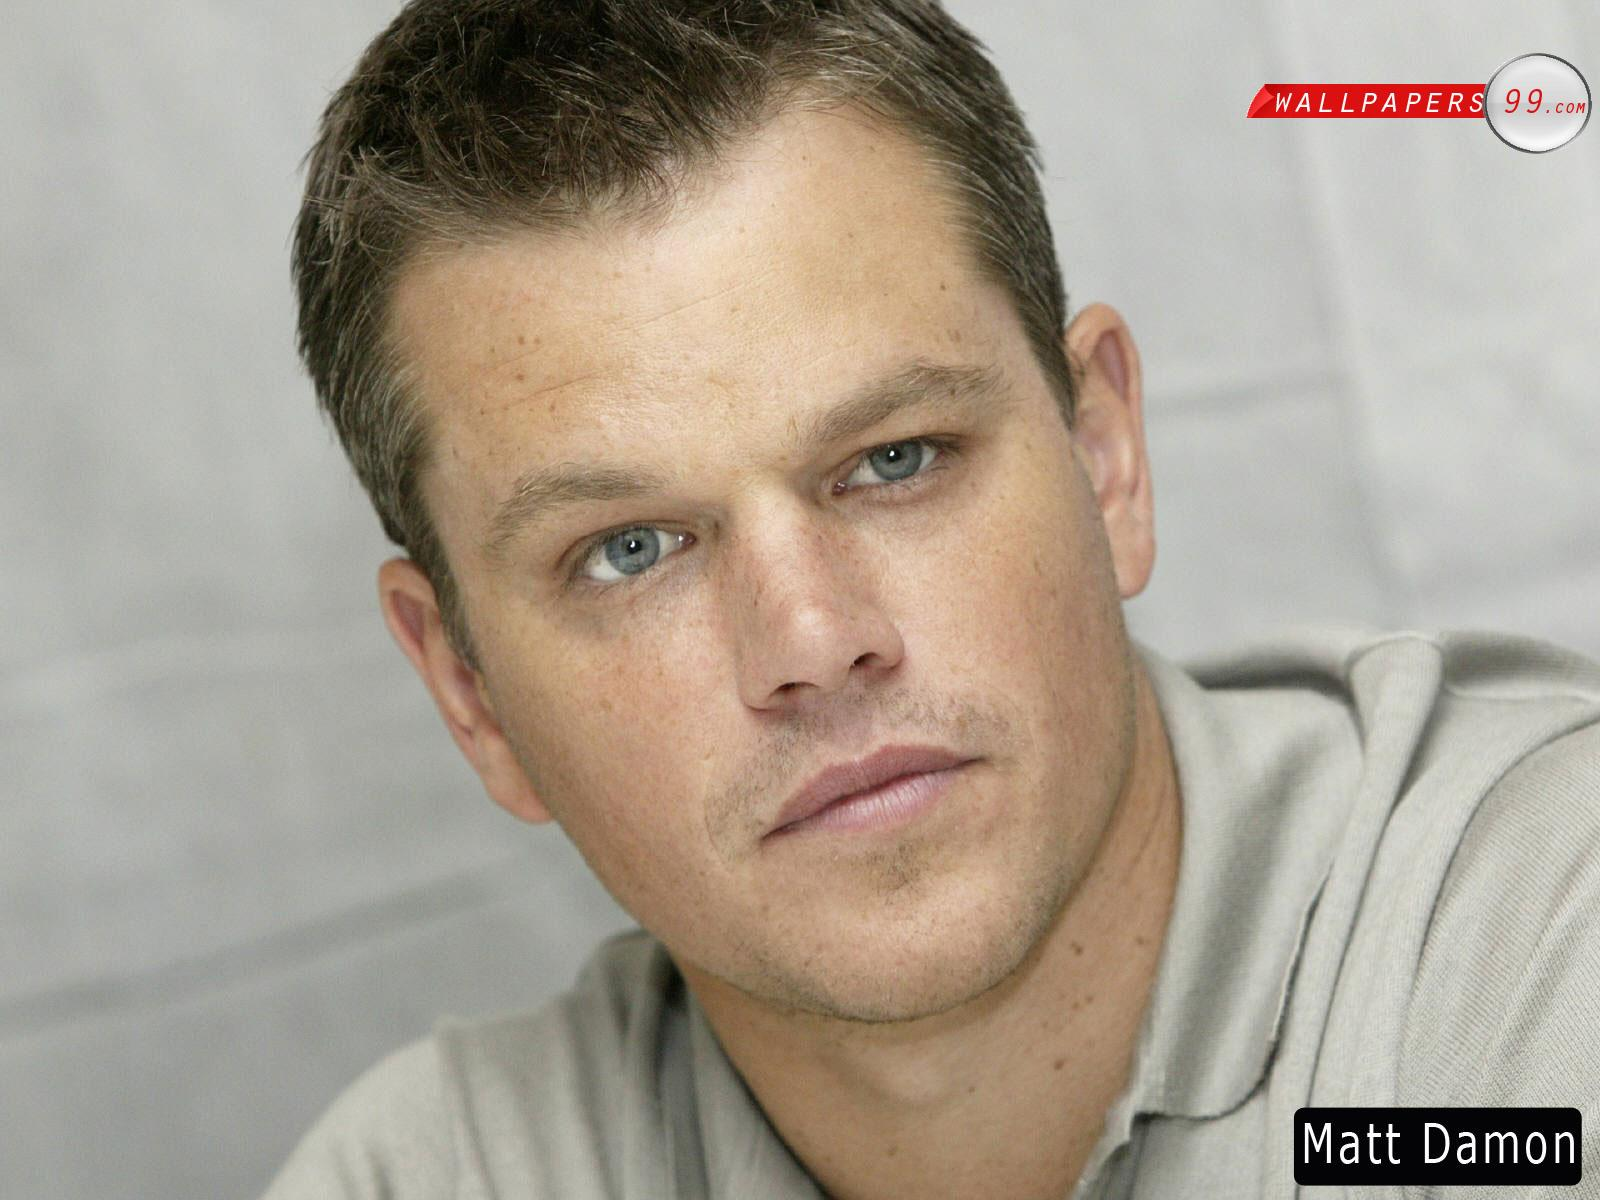 Matt Damon 1600x1200 22639 Wallpapers